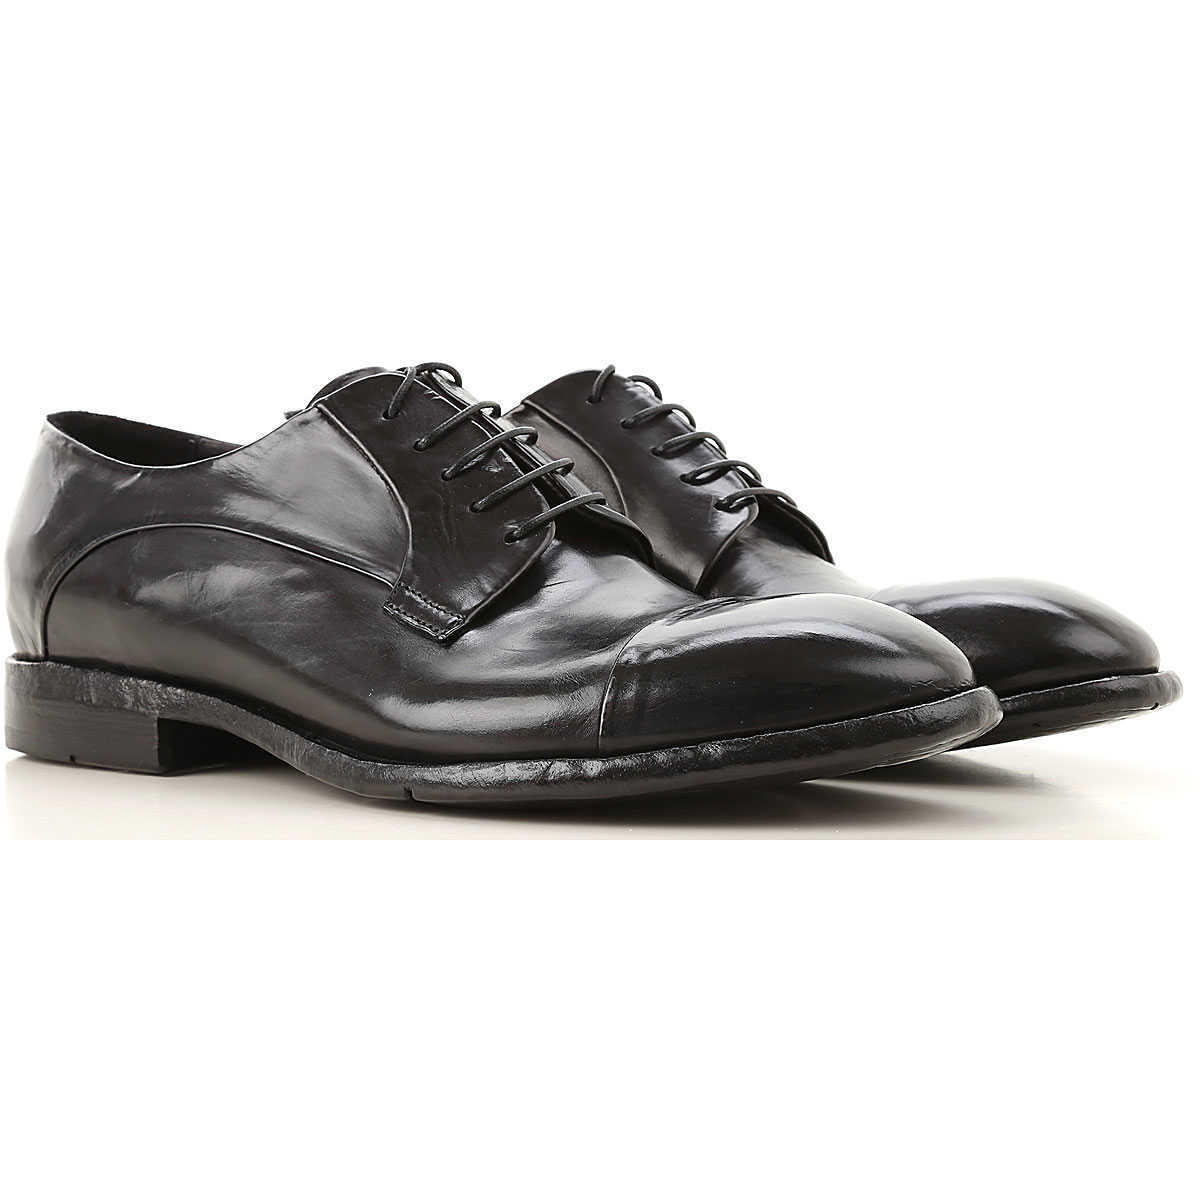 Lemargo Lace Up Shoes for Men Oxfords Derbies and Brogues On Sale DK - GOOFASH - Mens FORMAL SHOES